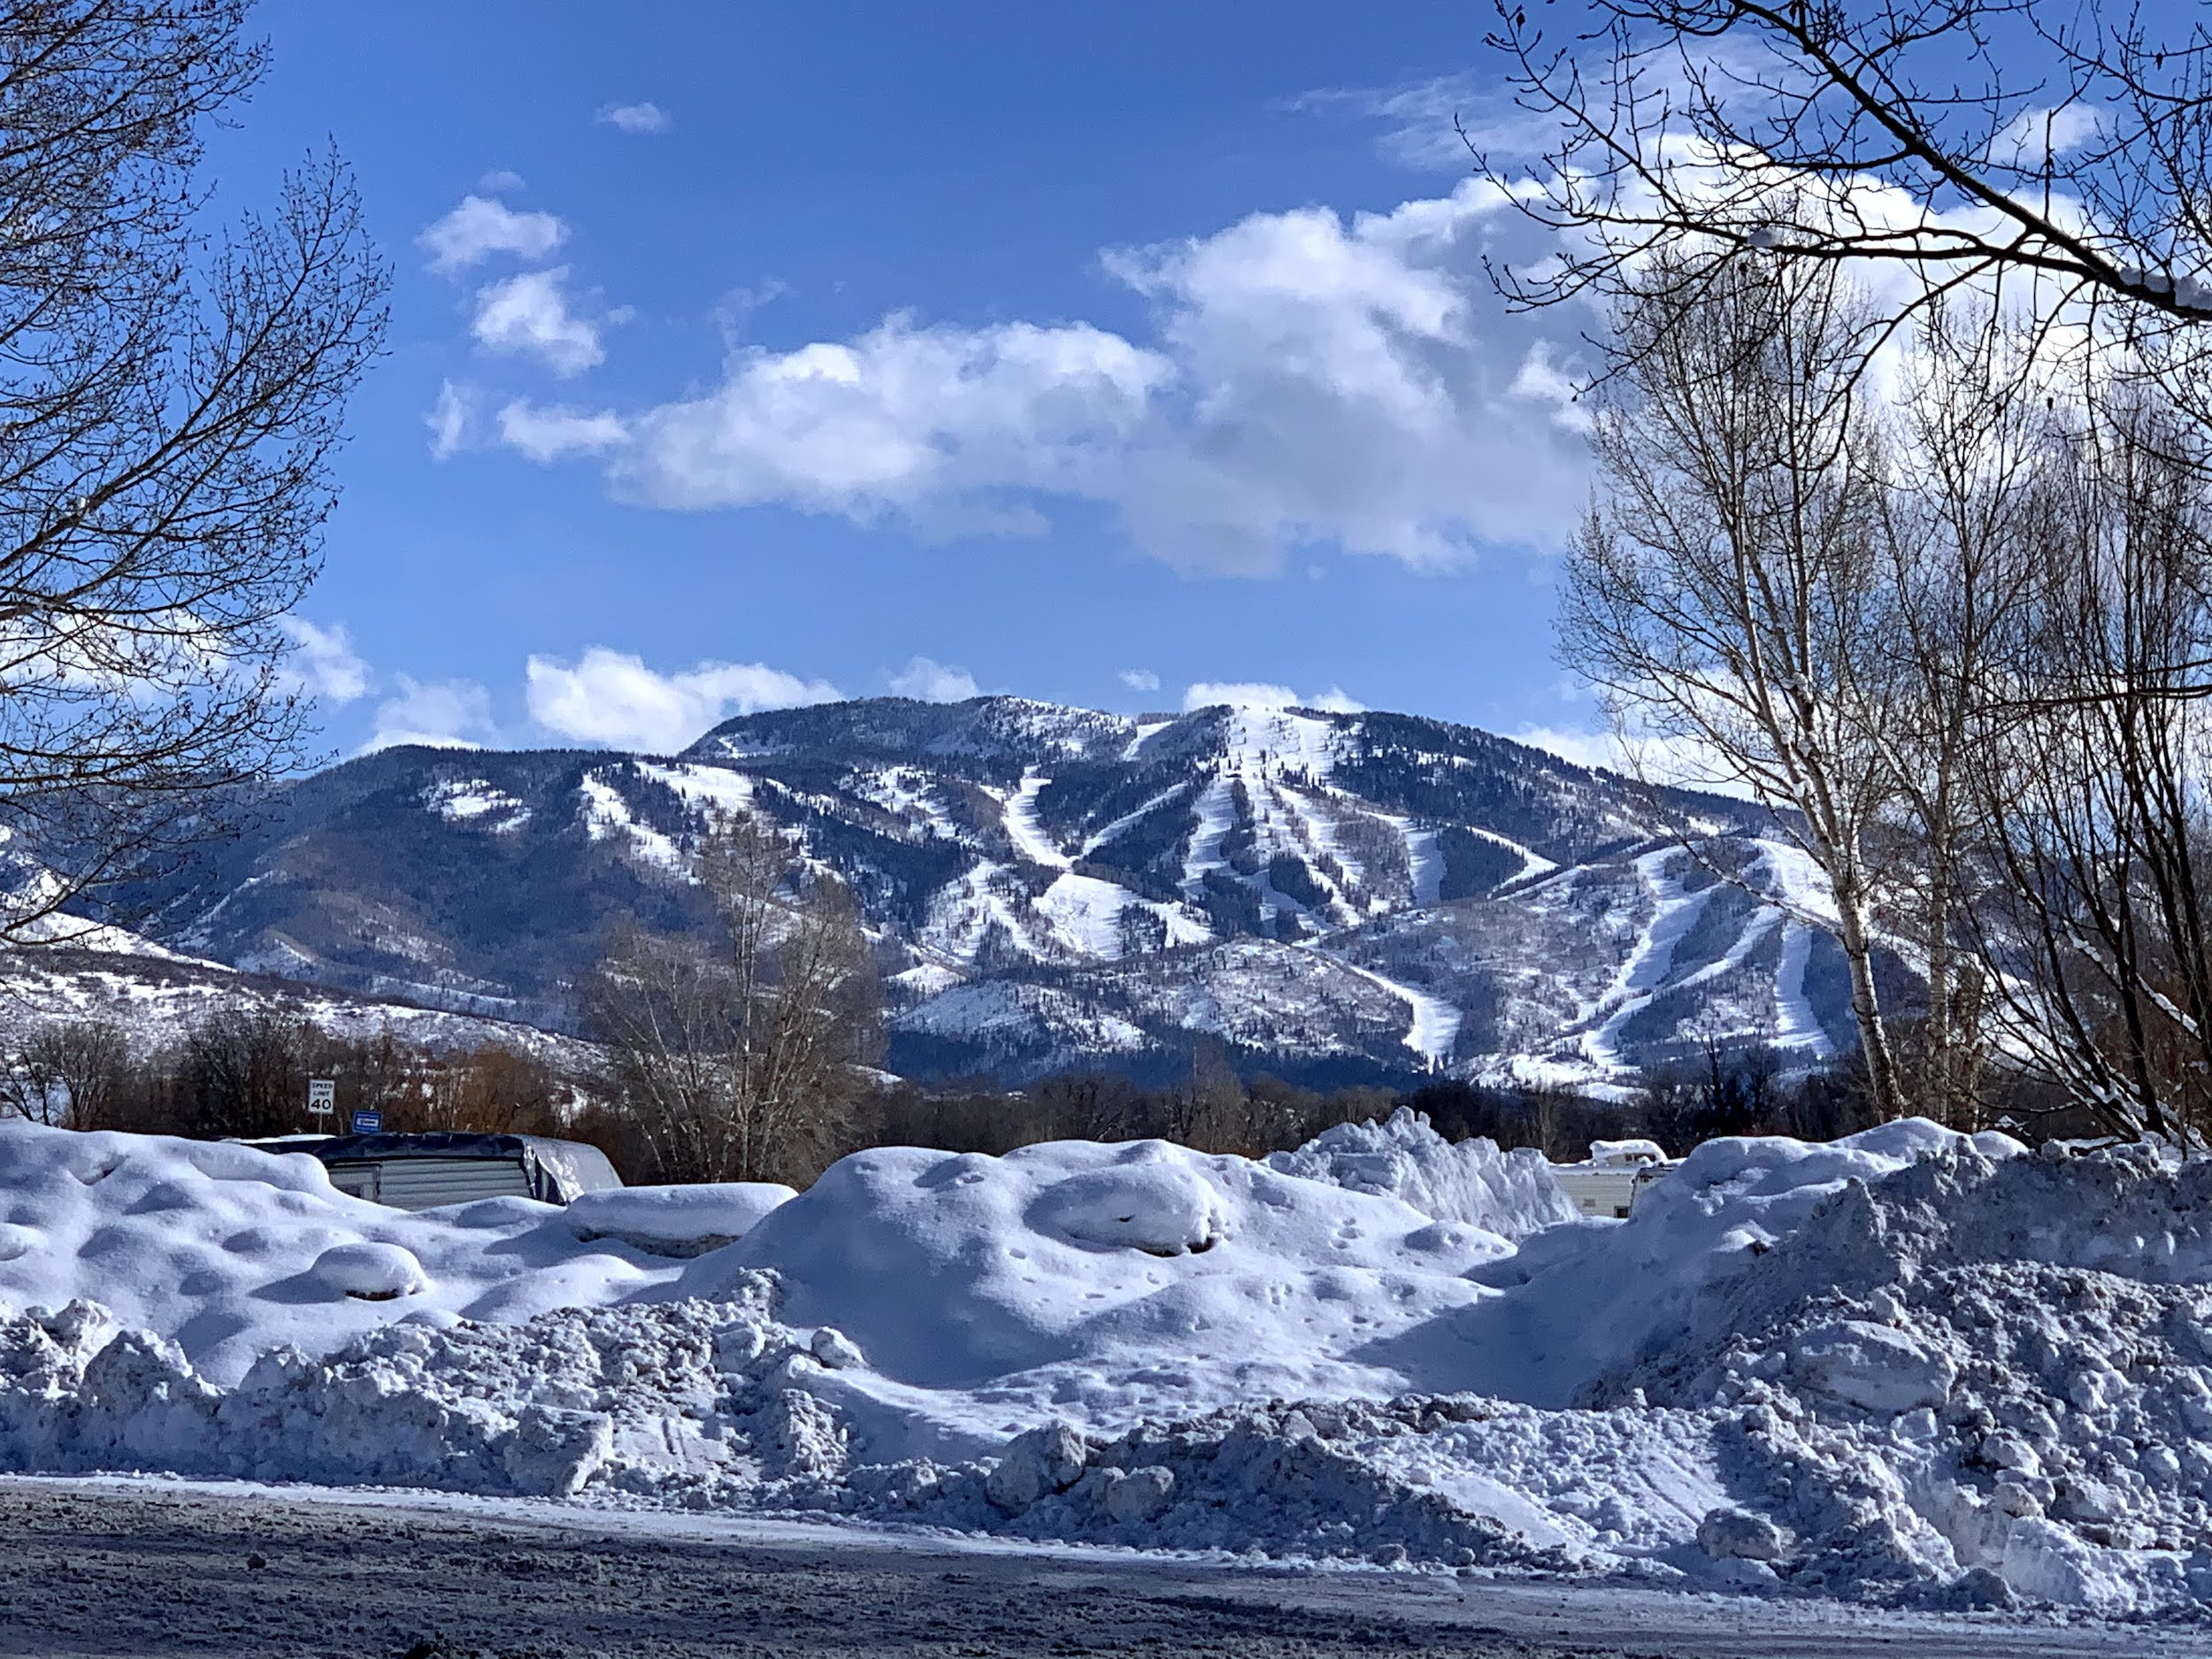 View of Steamboat Springs from KOA campground